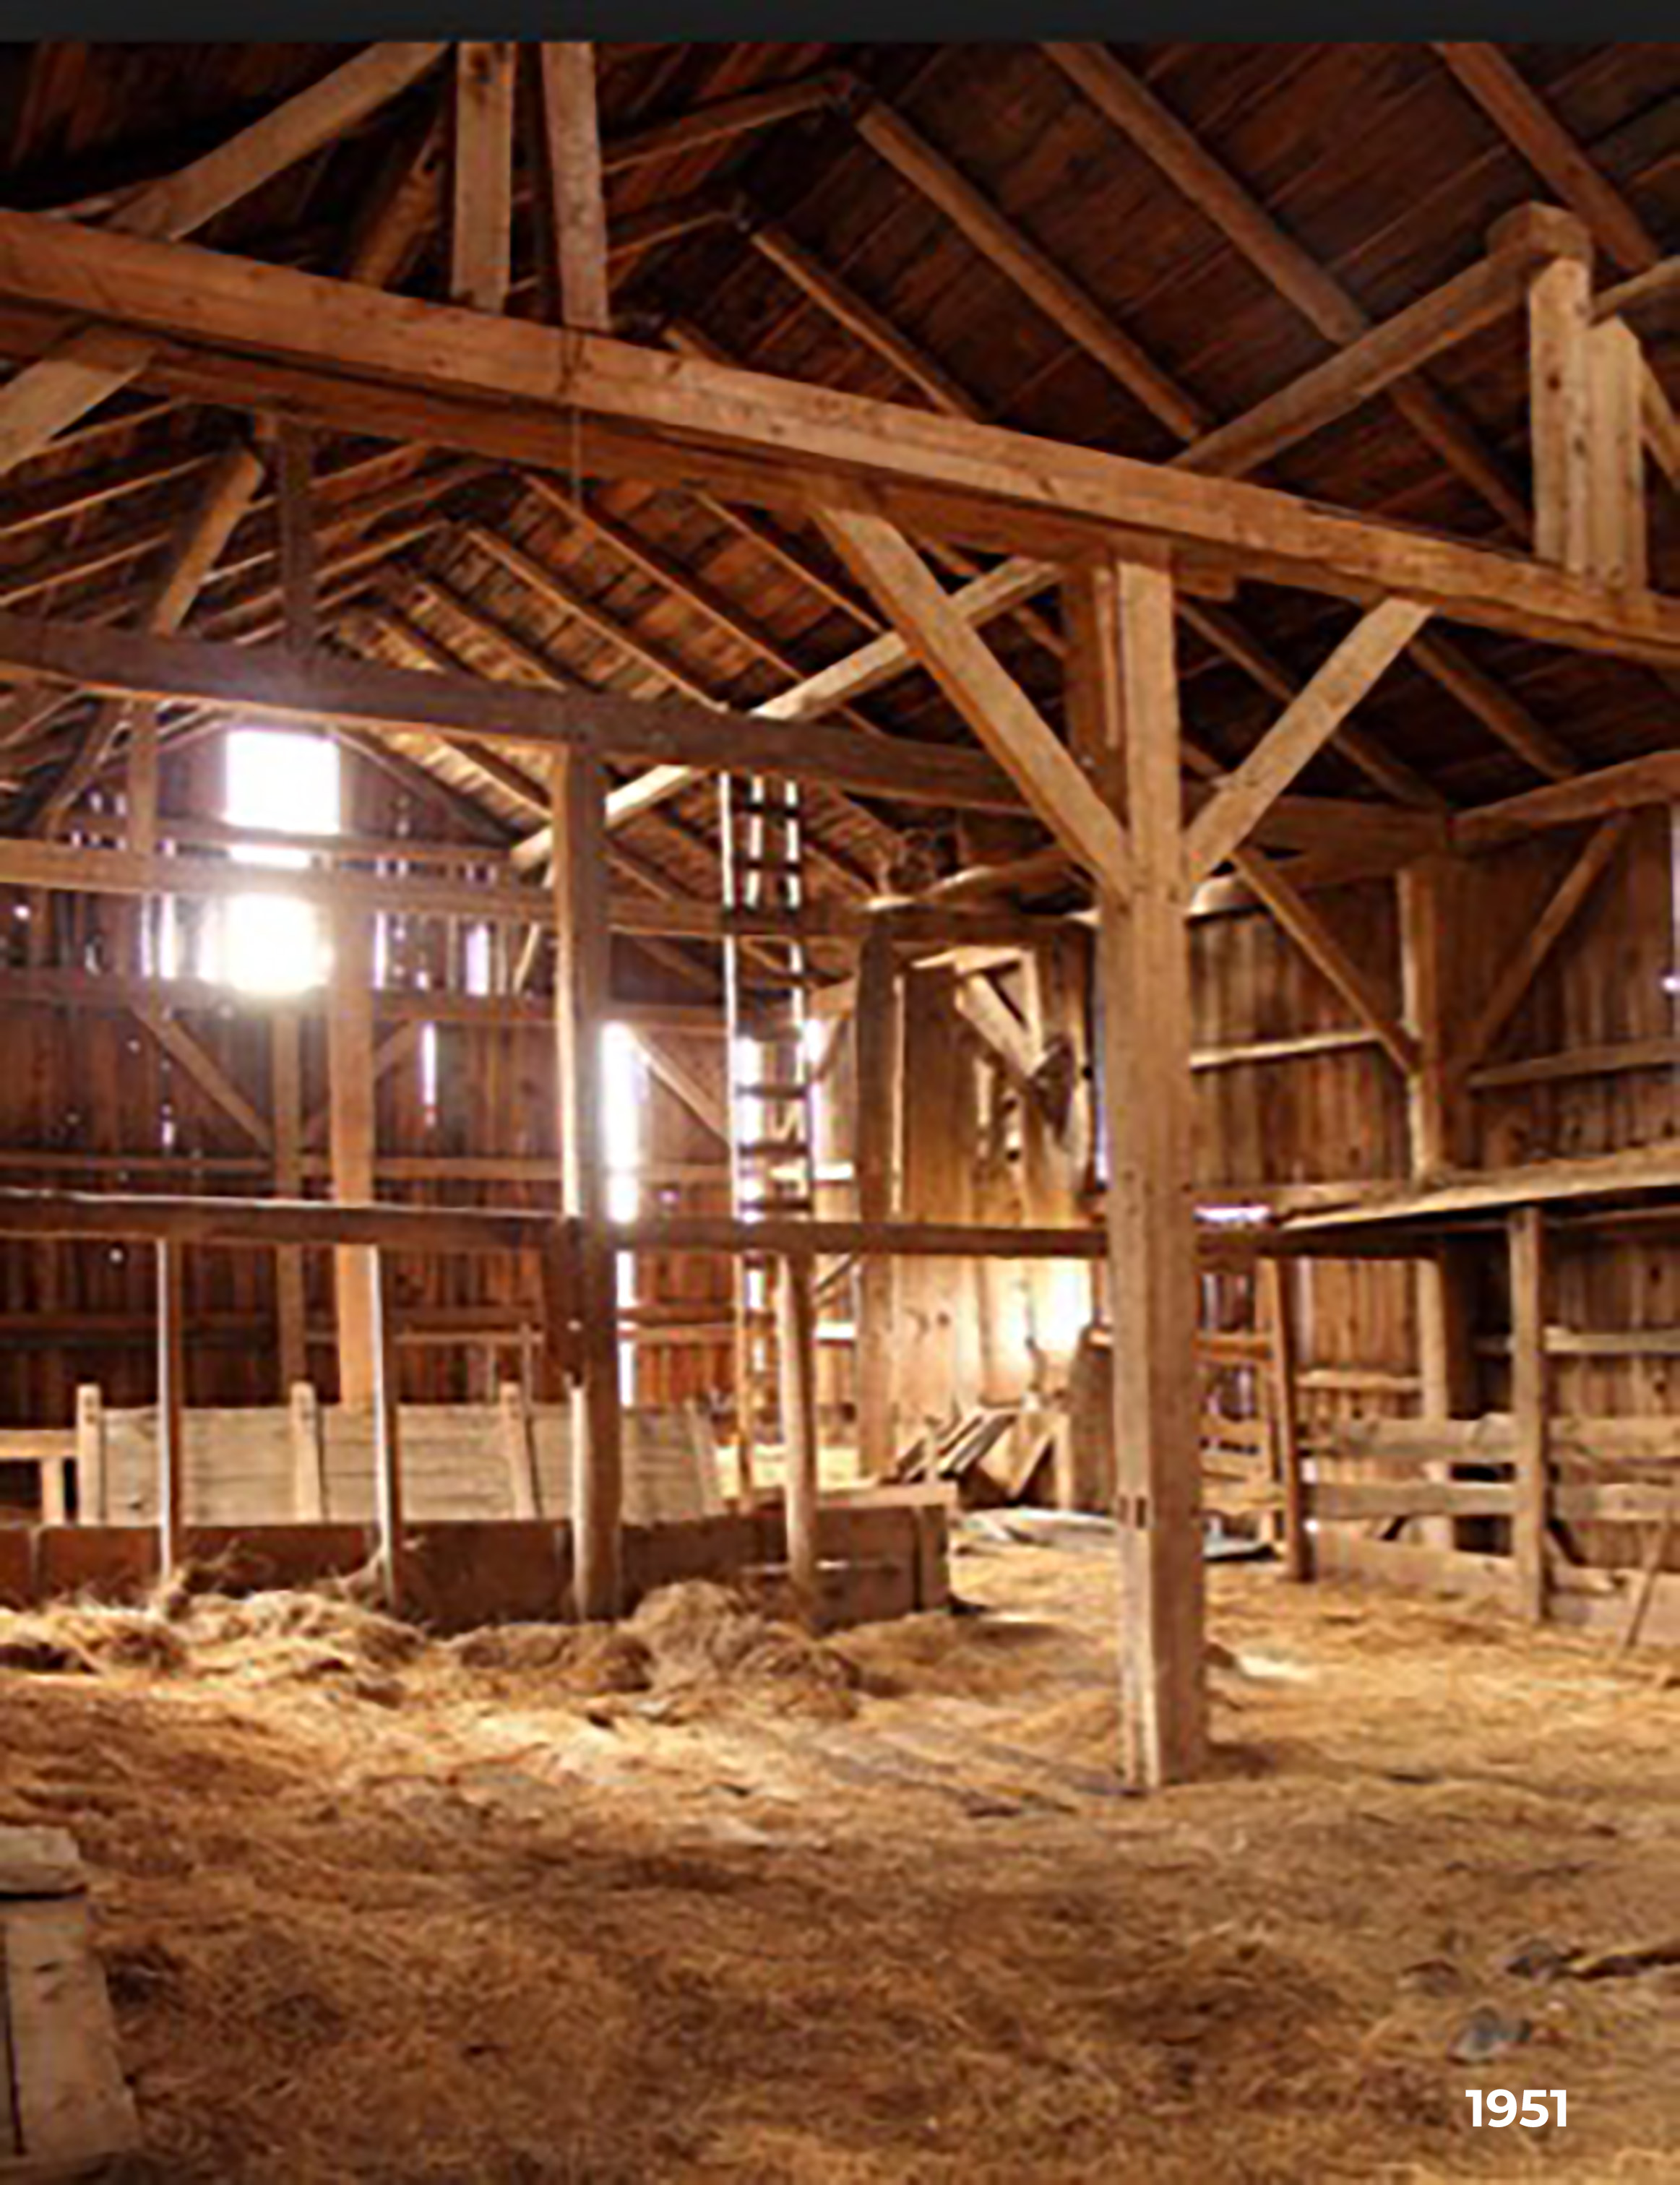 blog Barn image 1 copy copy.jpg